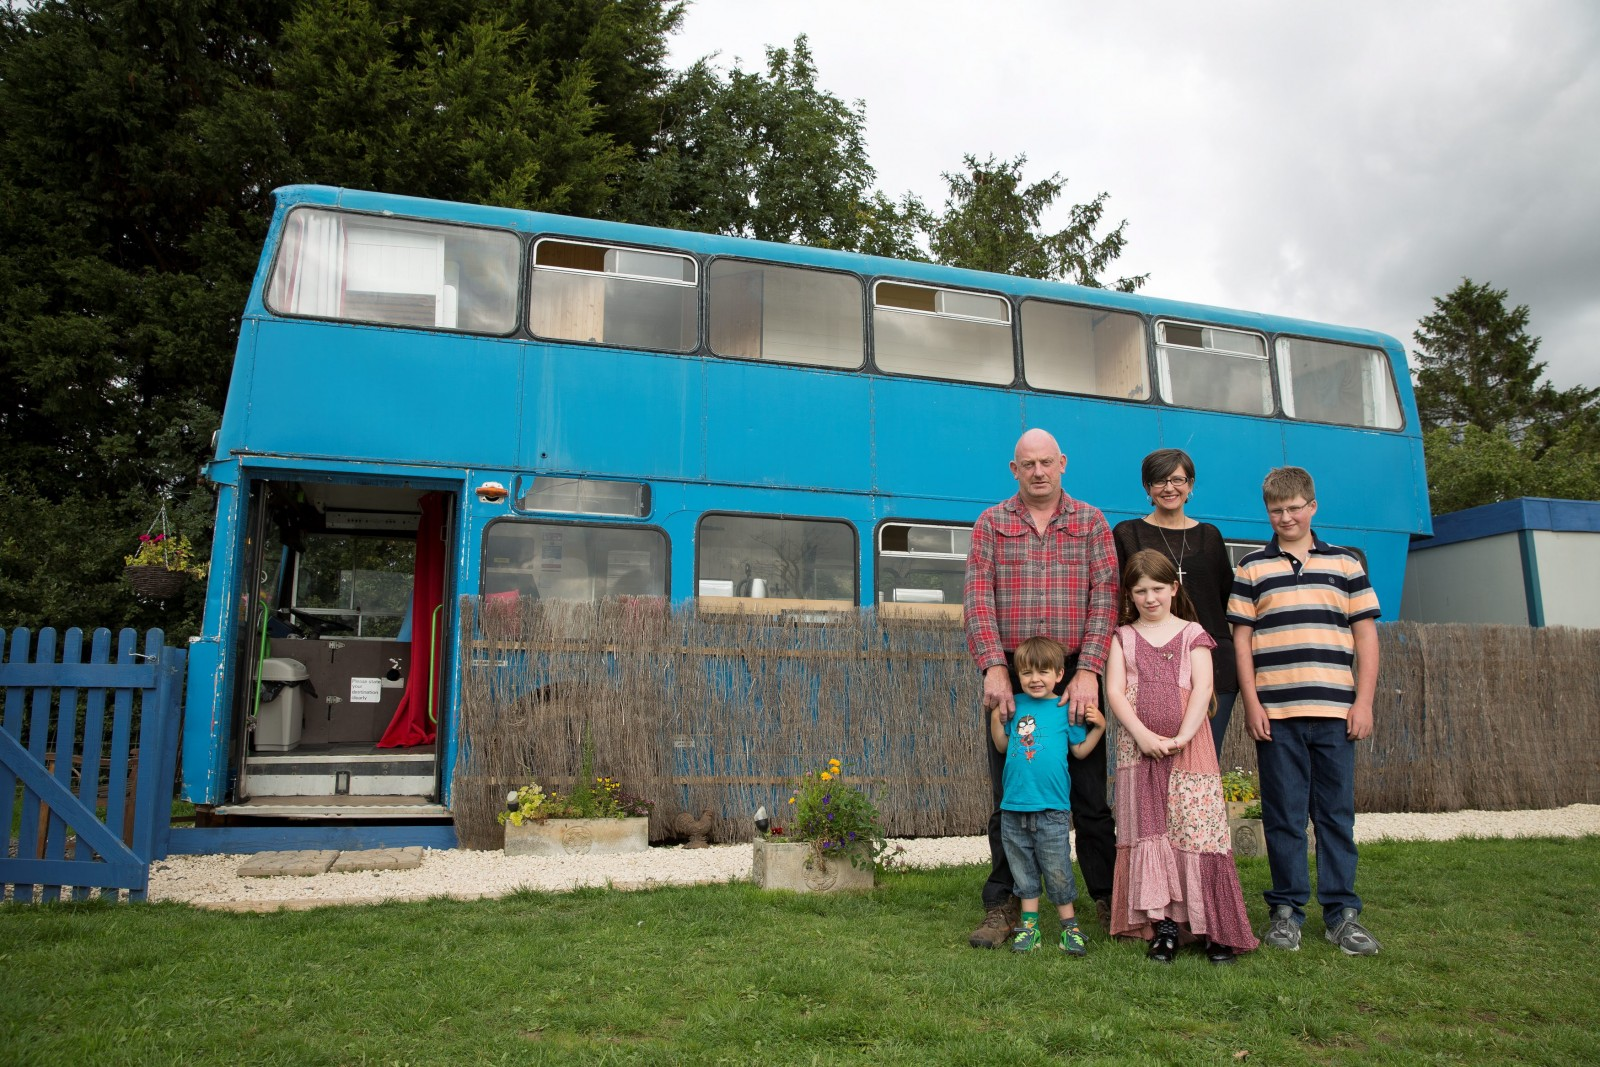 family convert double decker into dream holiday home because they